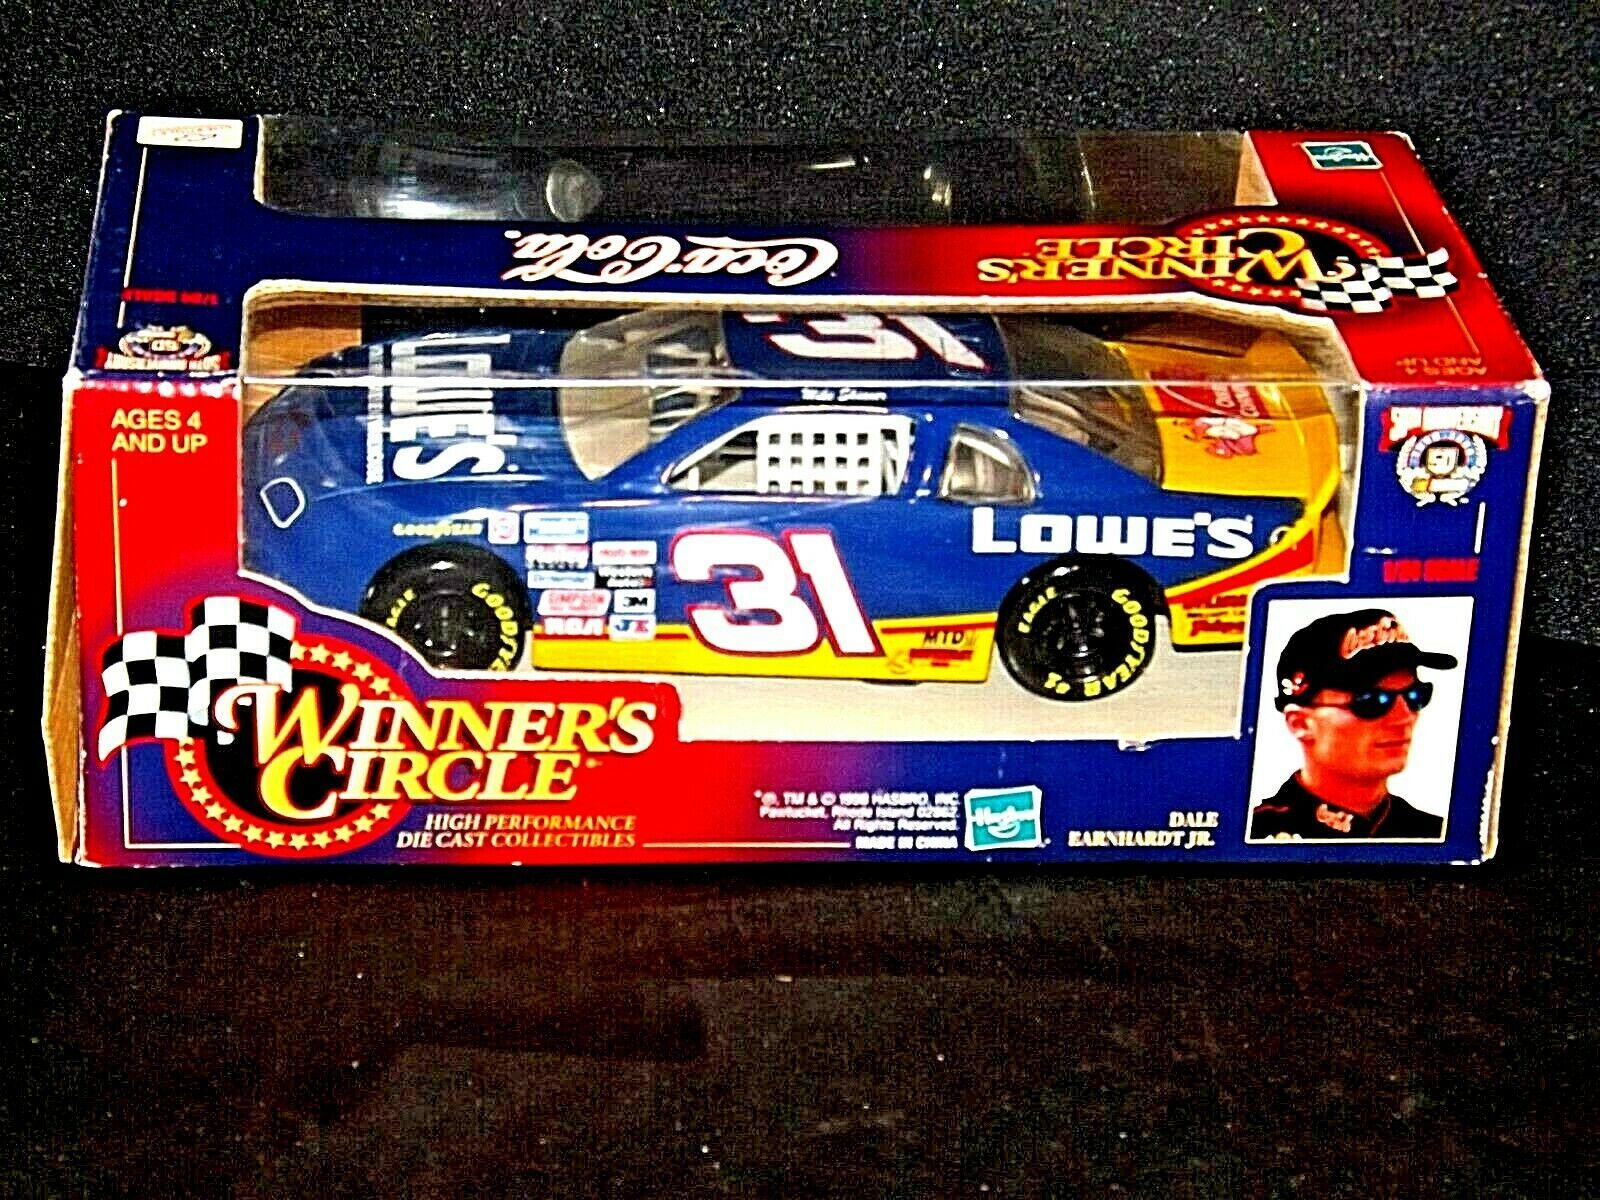 Winners Circle Dale Earnhardt Jr. #31 scale 1:24 stock car